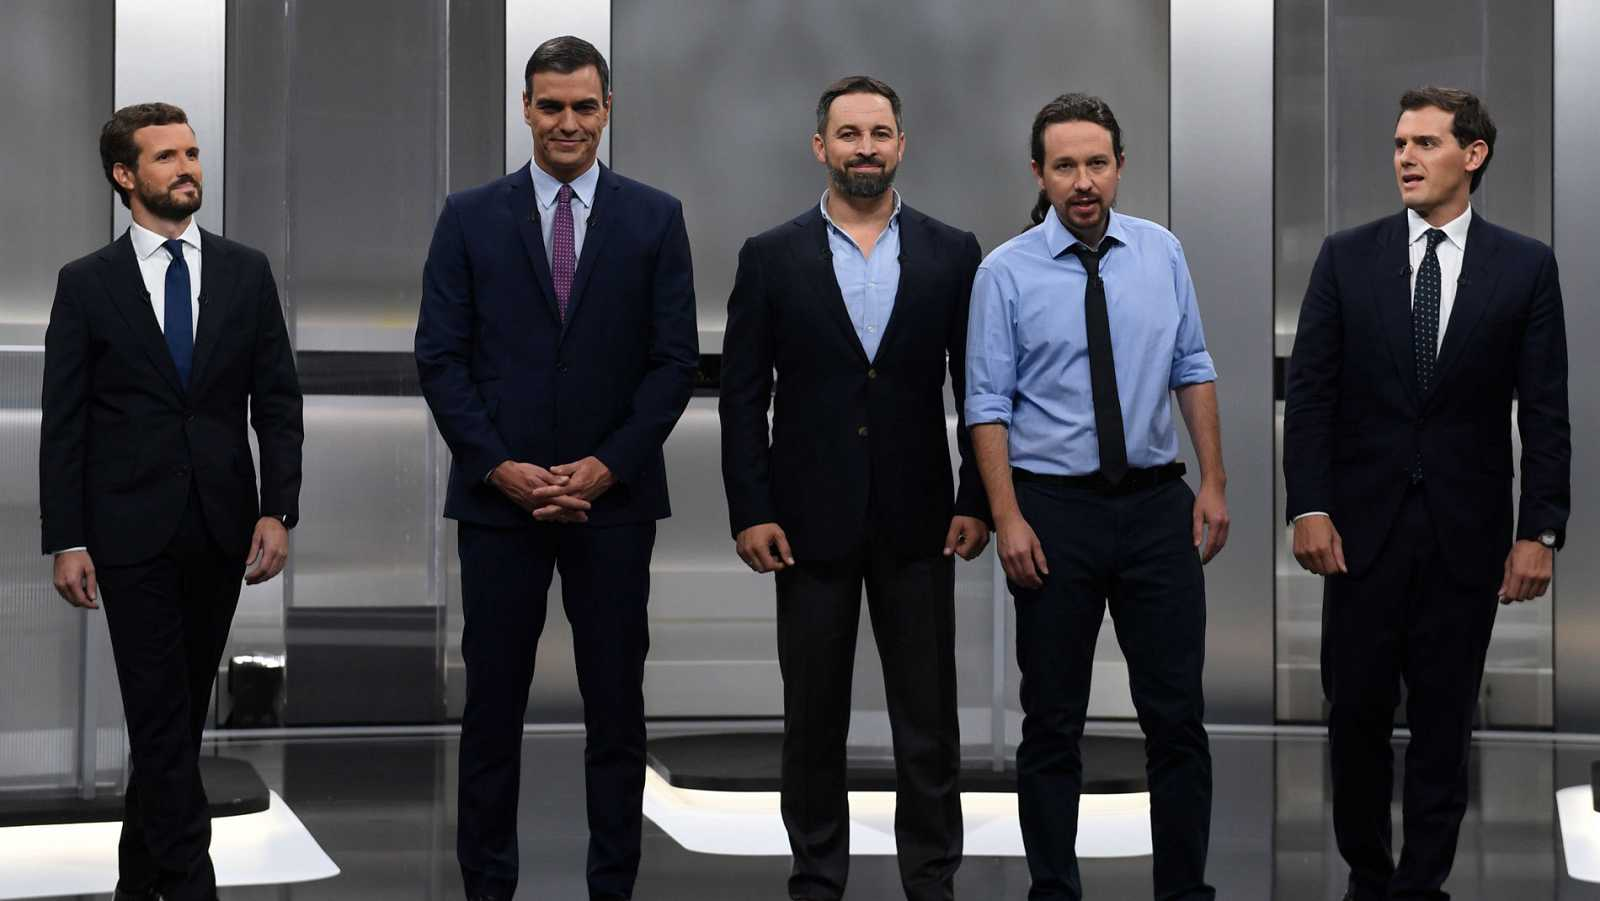 Candidatos en el debate a cinco